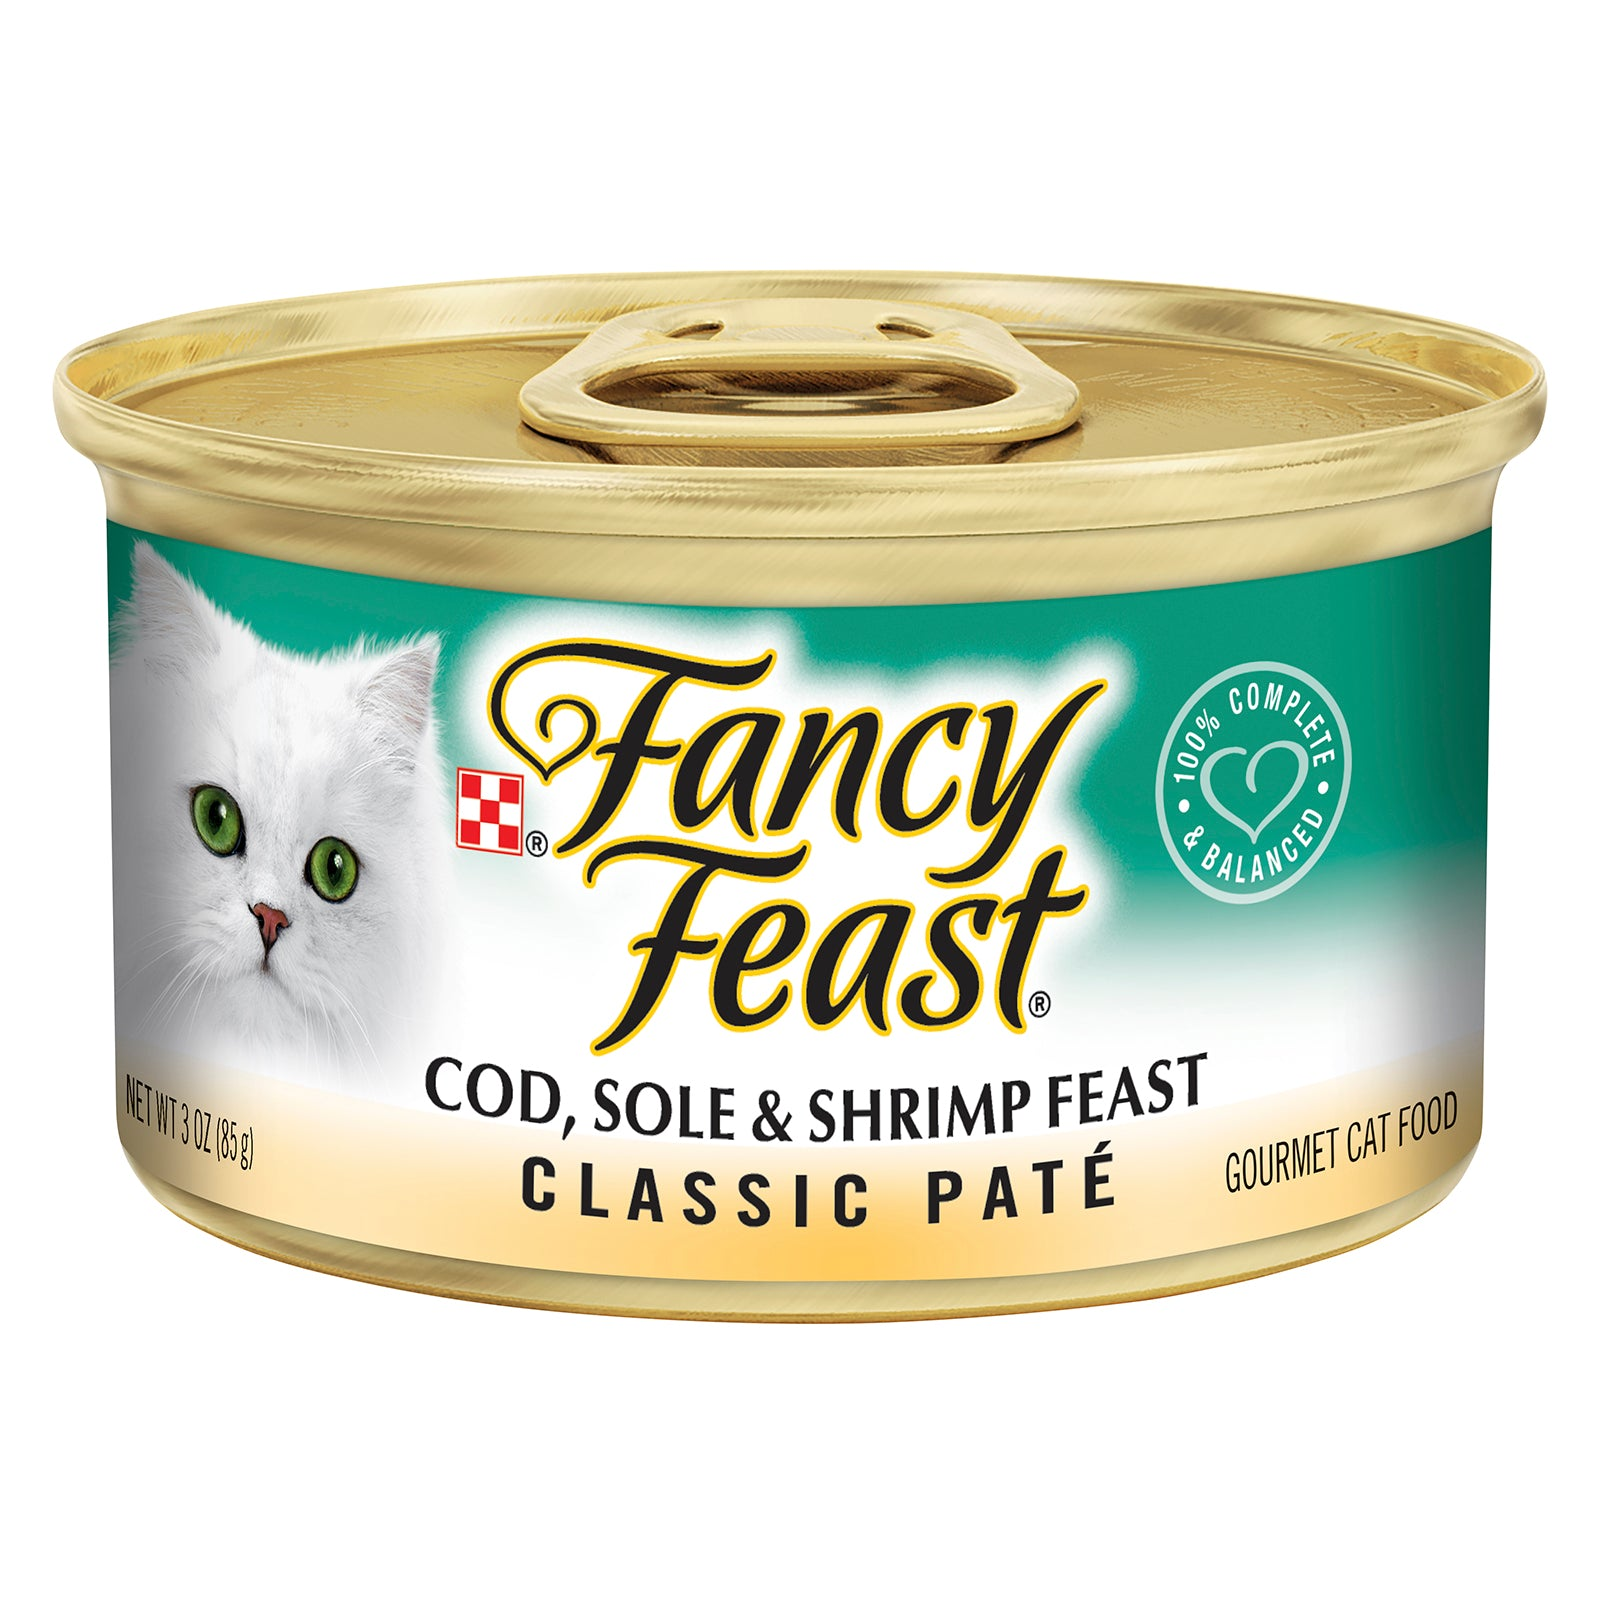 Fancy Feast Cat Food Can Adult Pate Cod, Sole & Shrimp Feast